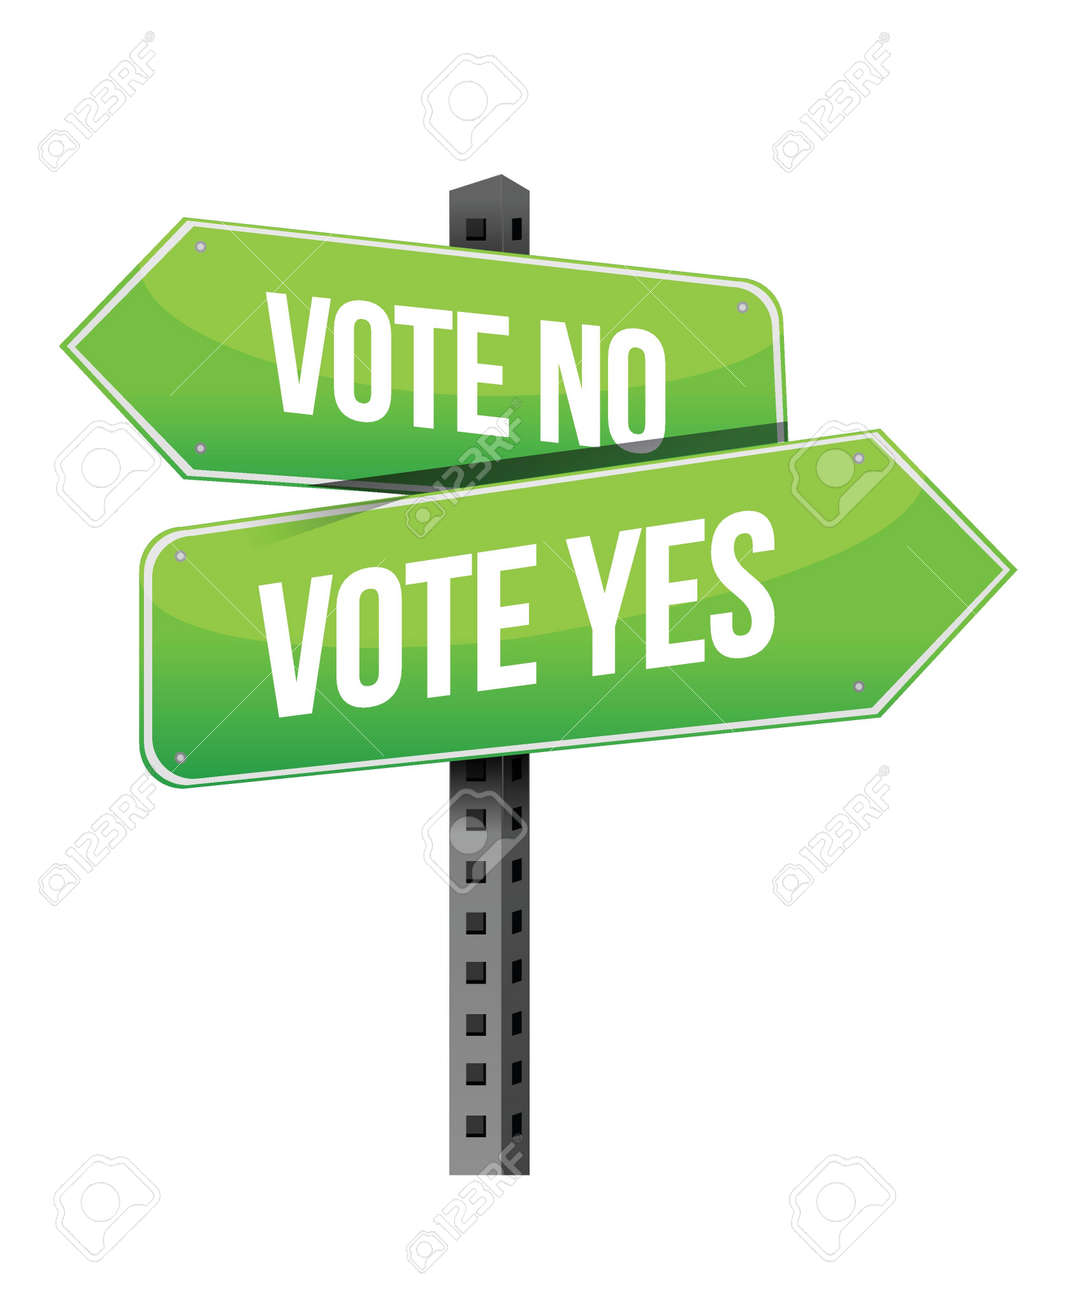 vote yes or no road sign illustration design over a white background Stock Vector - 18487039